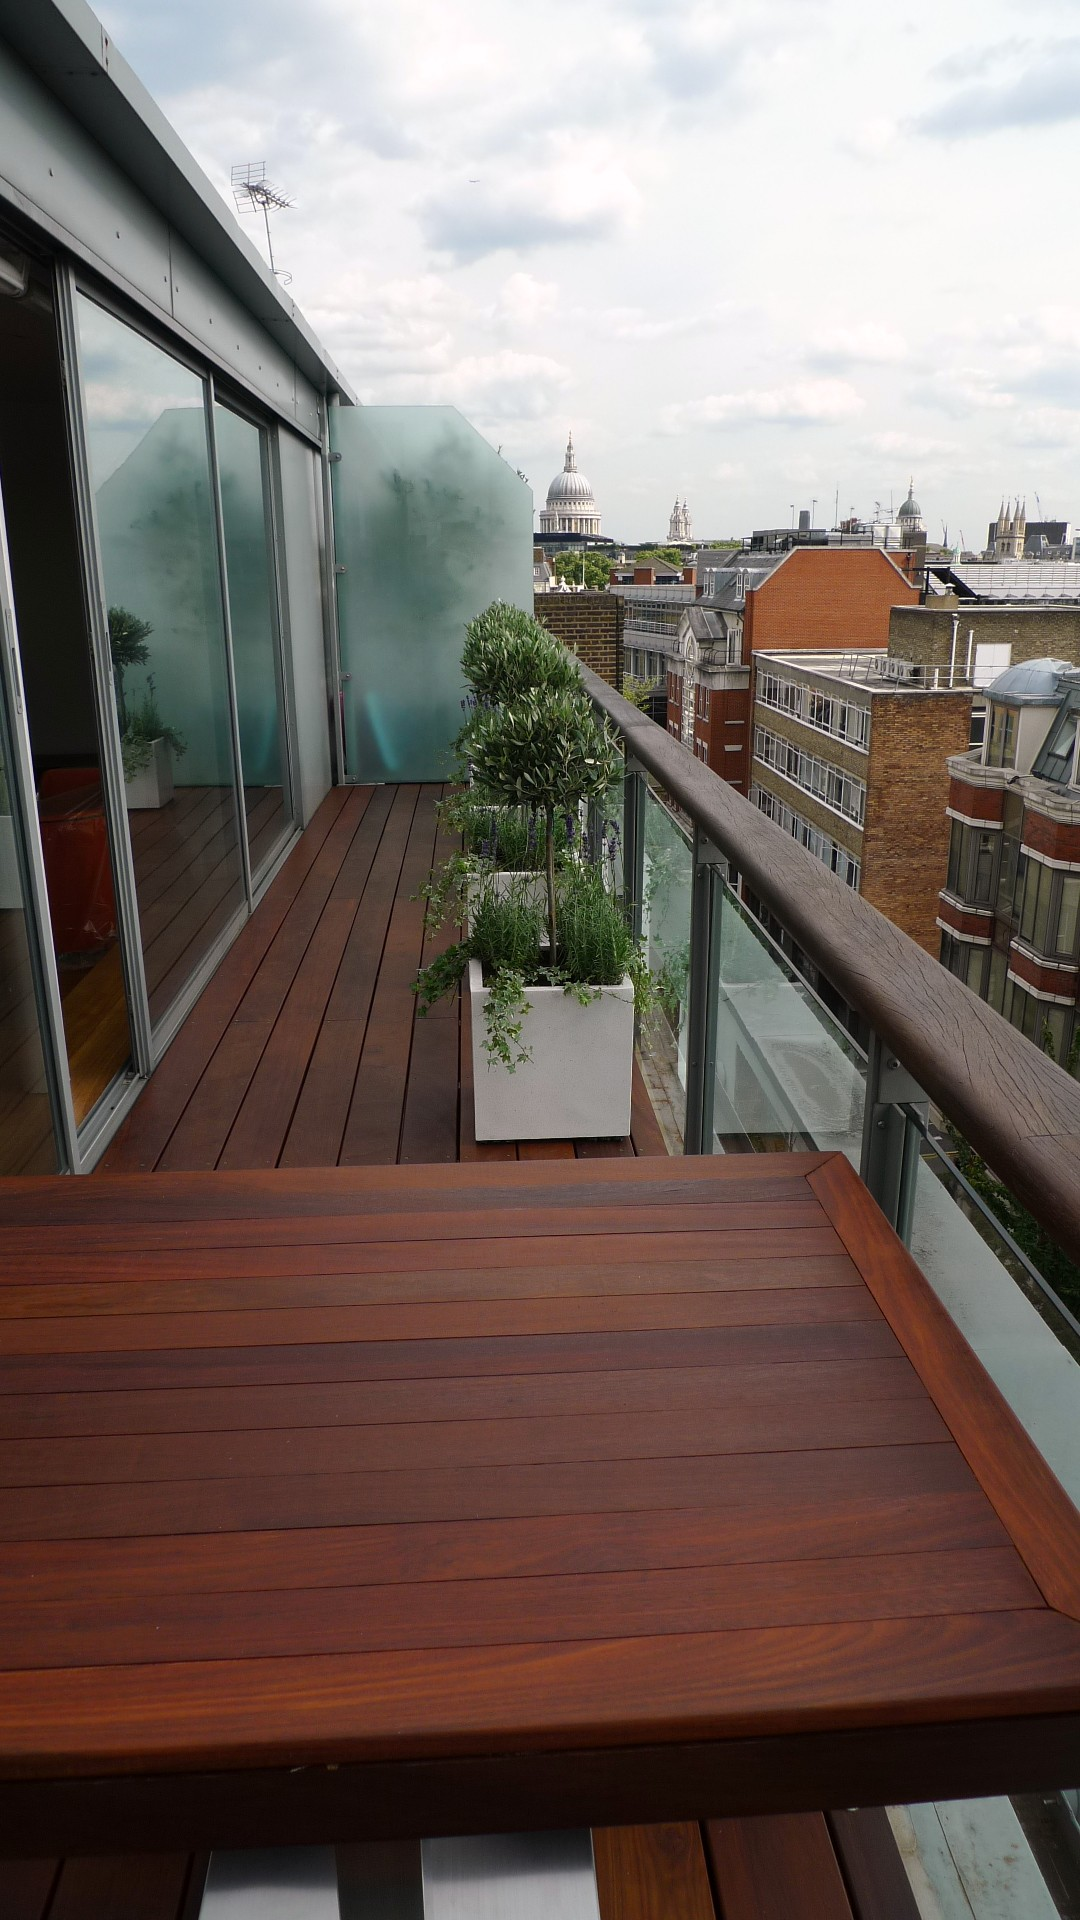 Ipe brazillian hardwood deck decking installation builders garden designers islington central london roof garden (7)